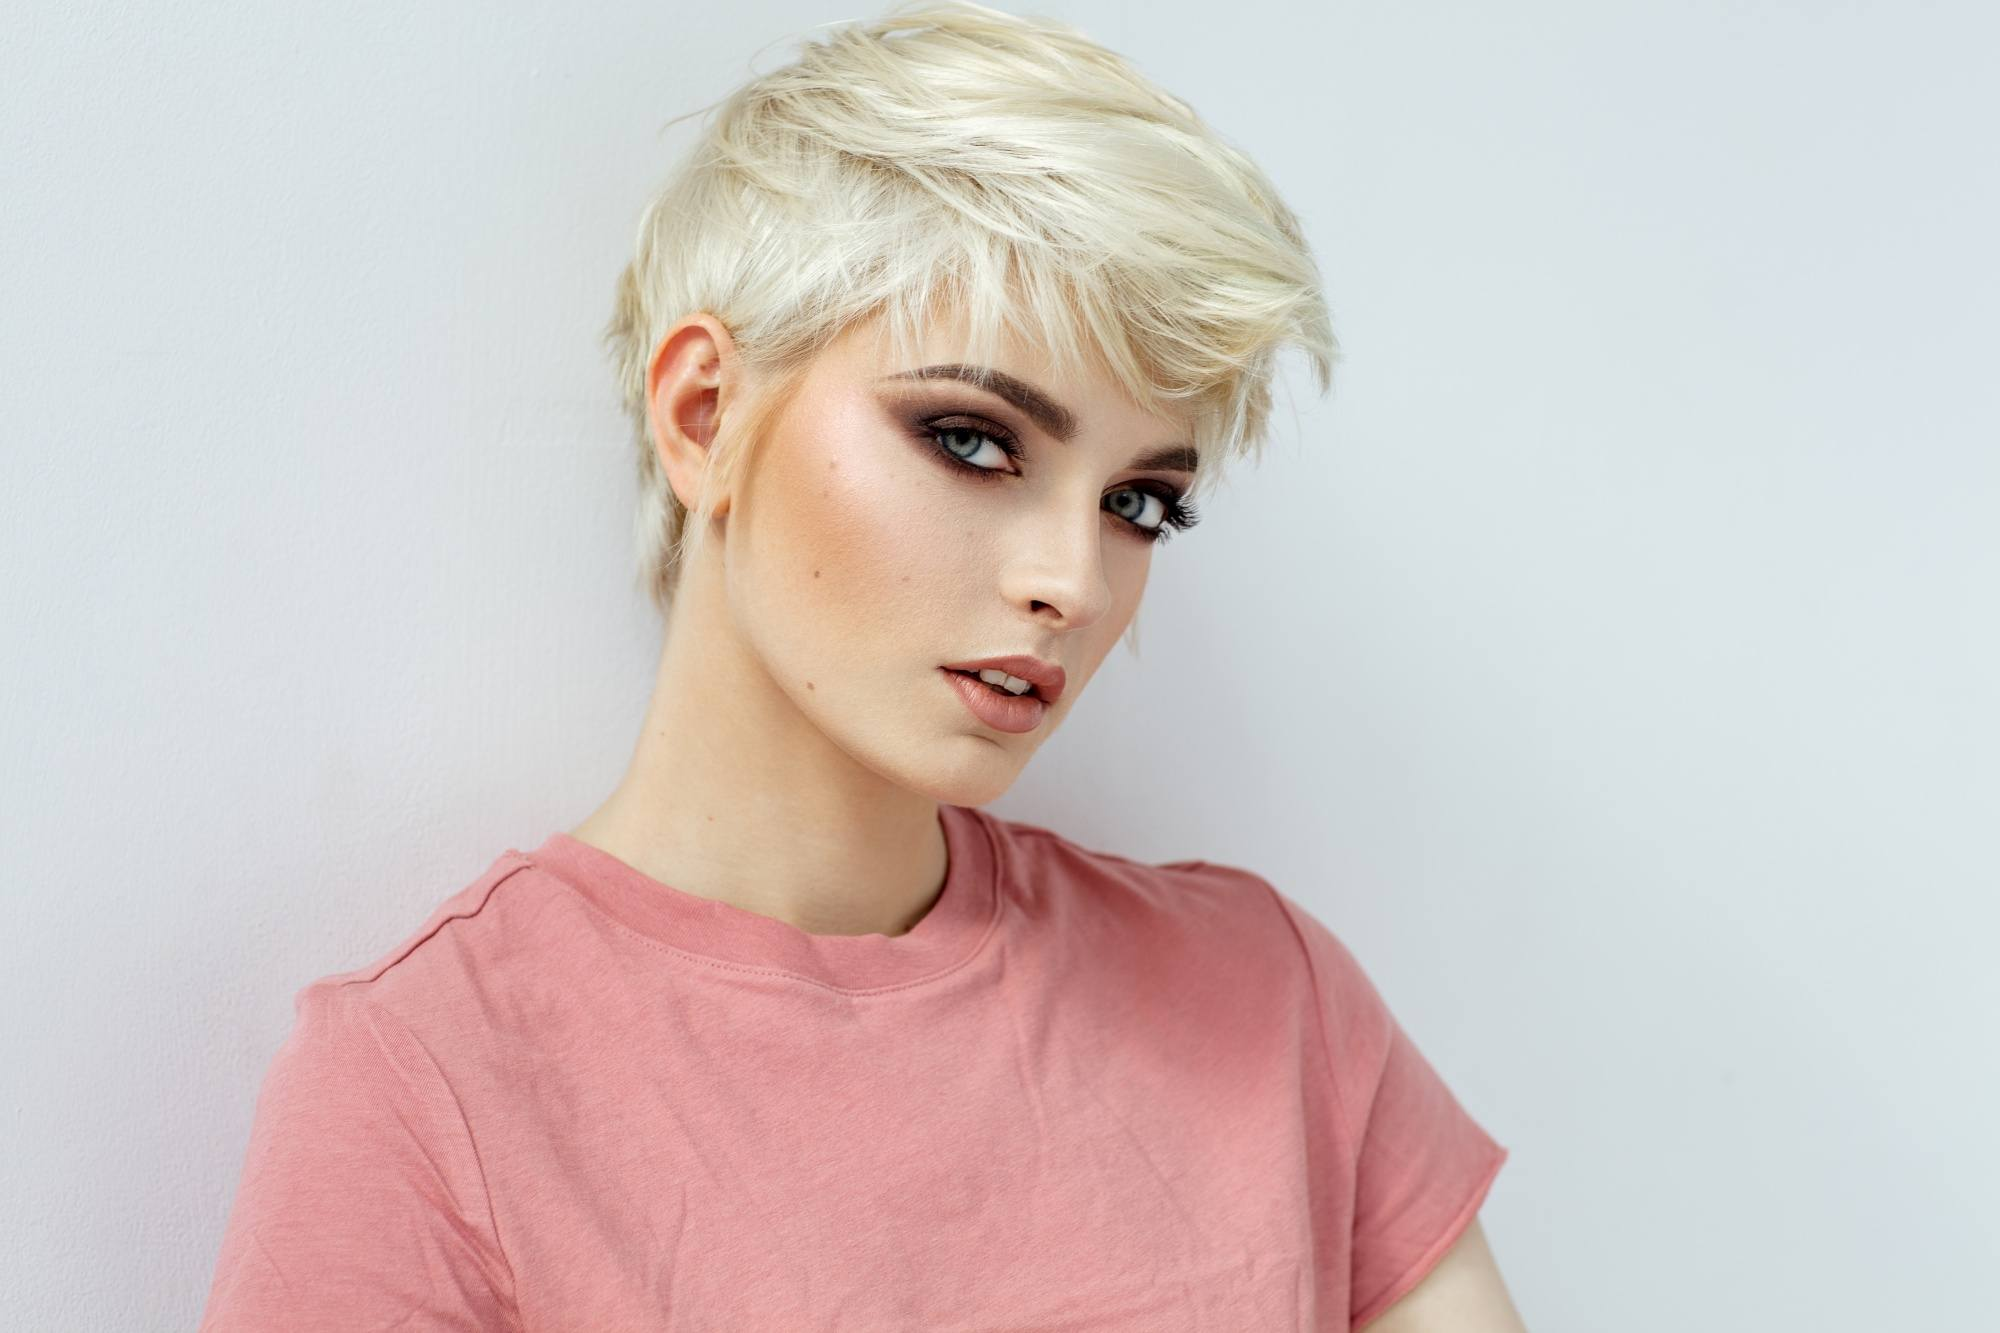 Short hairstyles for long faces: Closeup shot of a woman with short blonde hair wearing a pink shirt